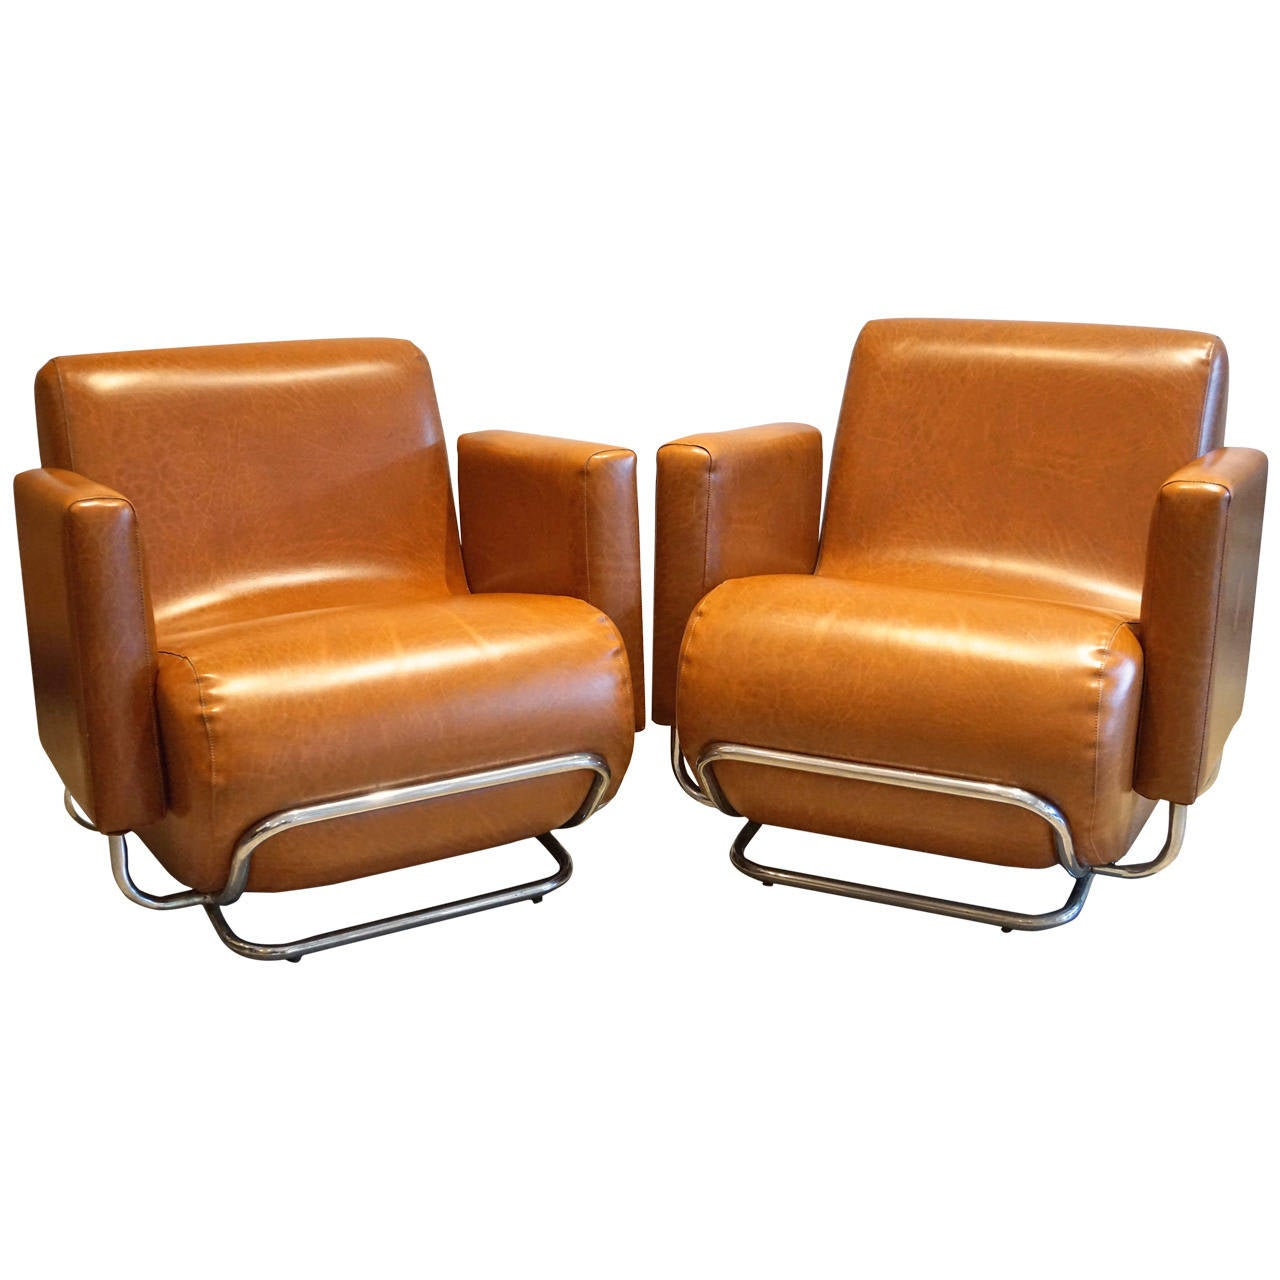 Modern Club Chairs Italian Modern Club Chairs At 1stdibs